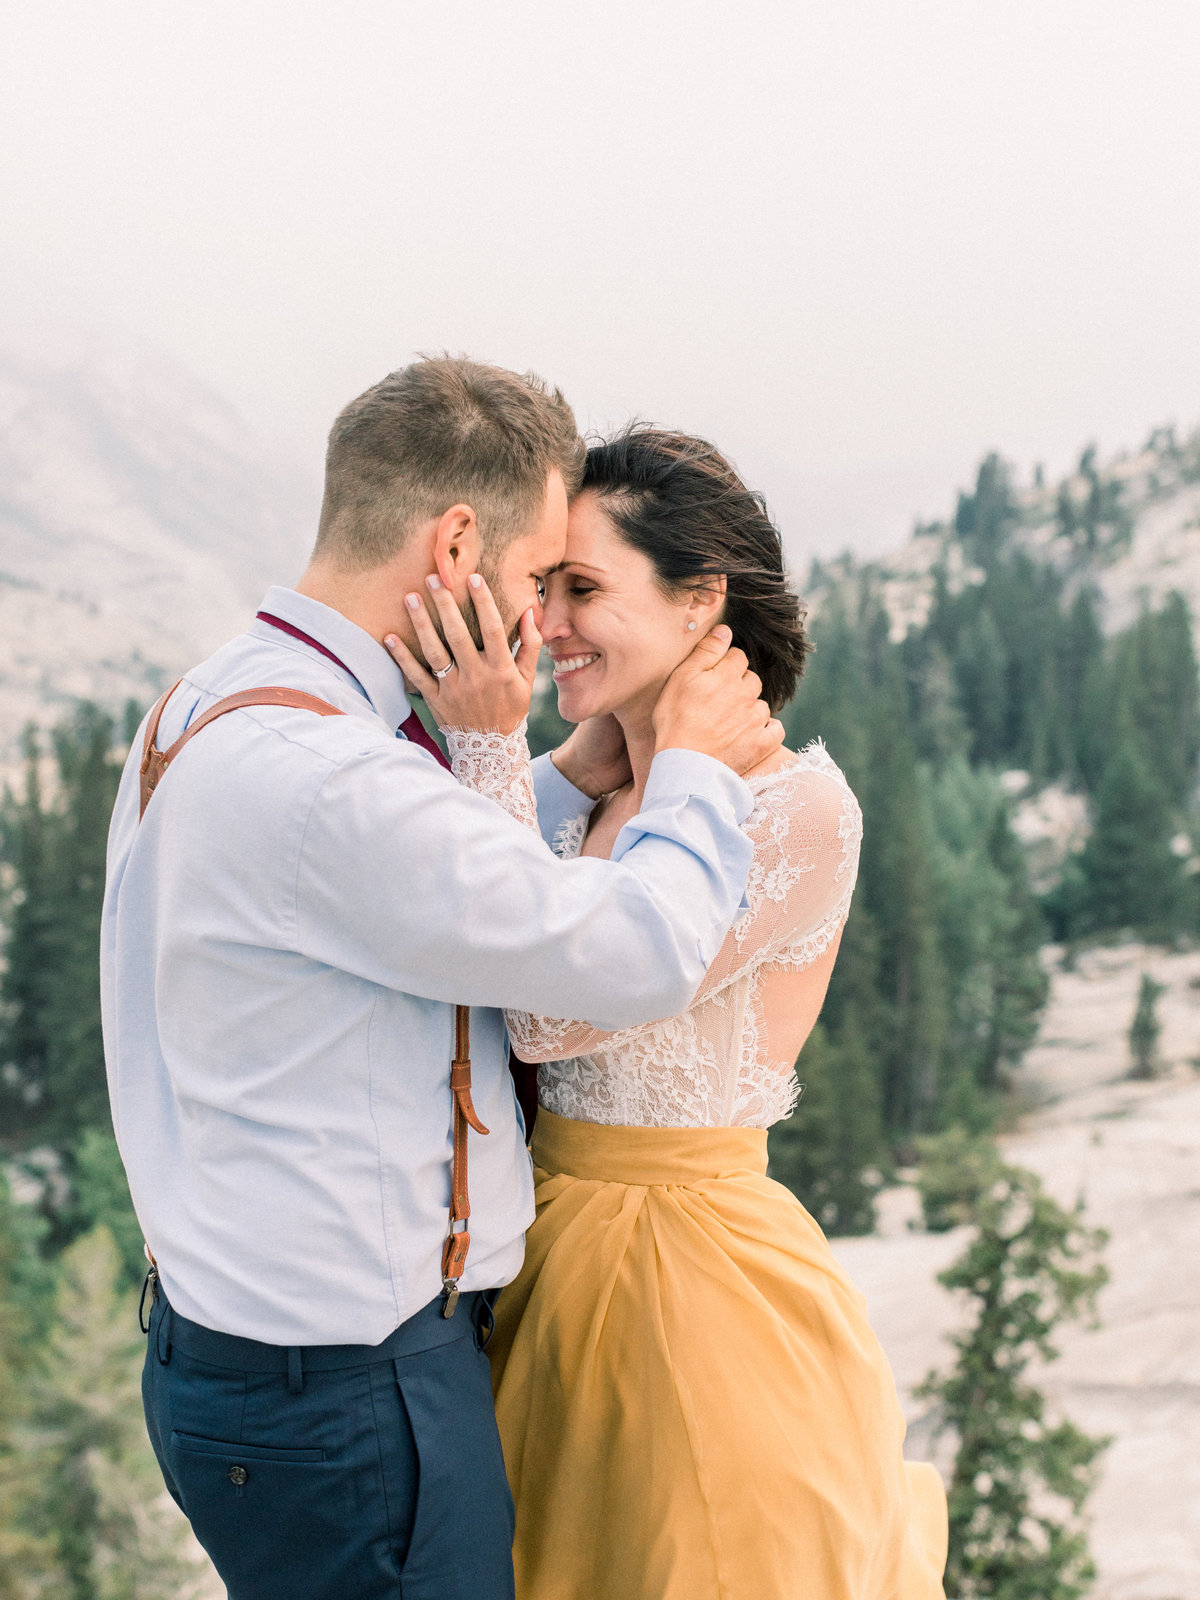 california wedding photographer, california destination wedding photographer, california elopement photographer, yosemite national park elopement-14